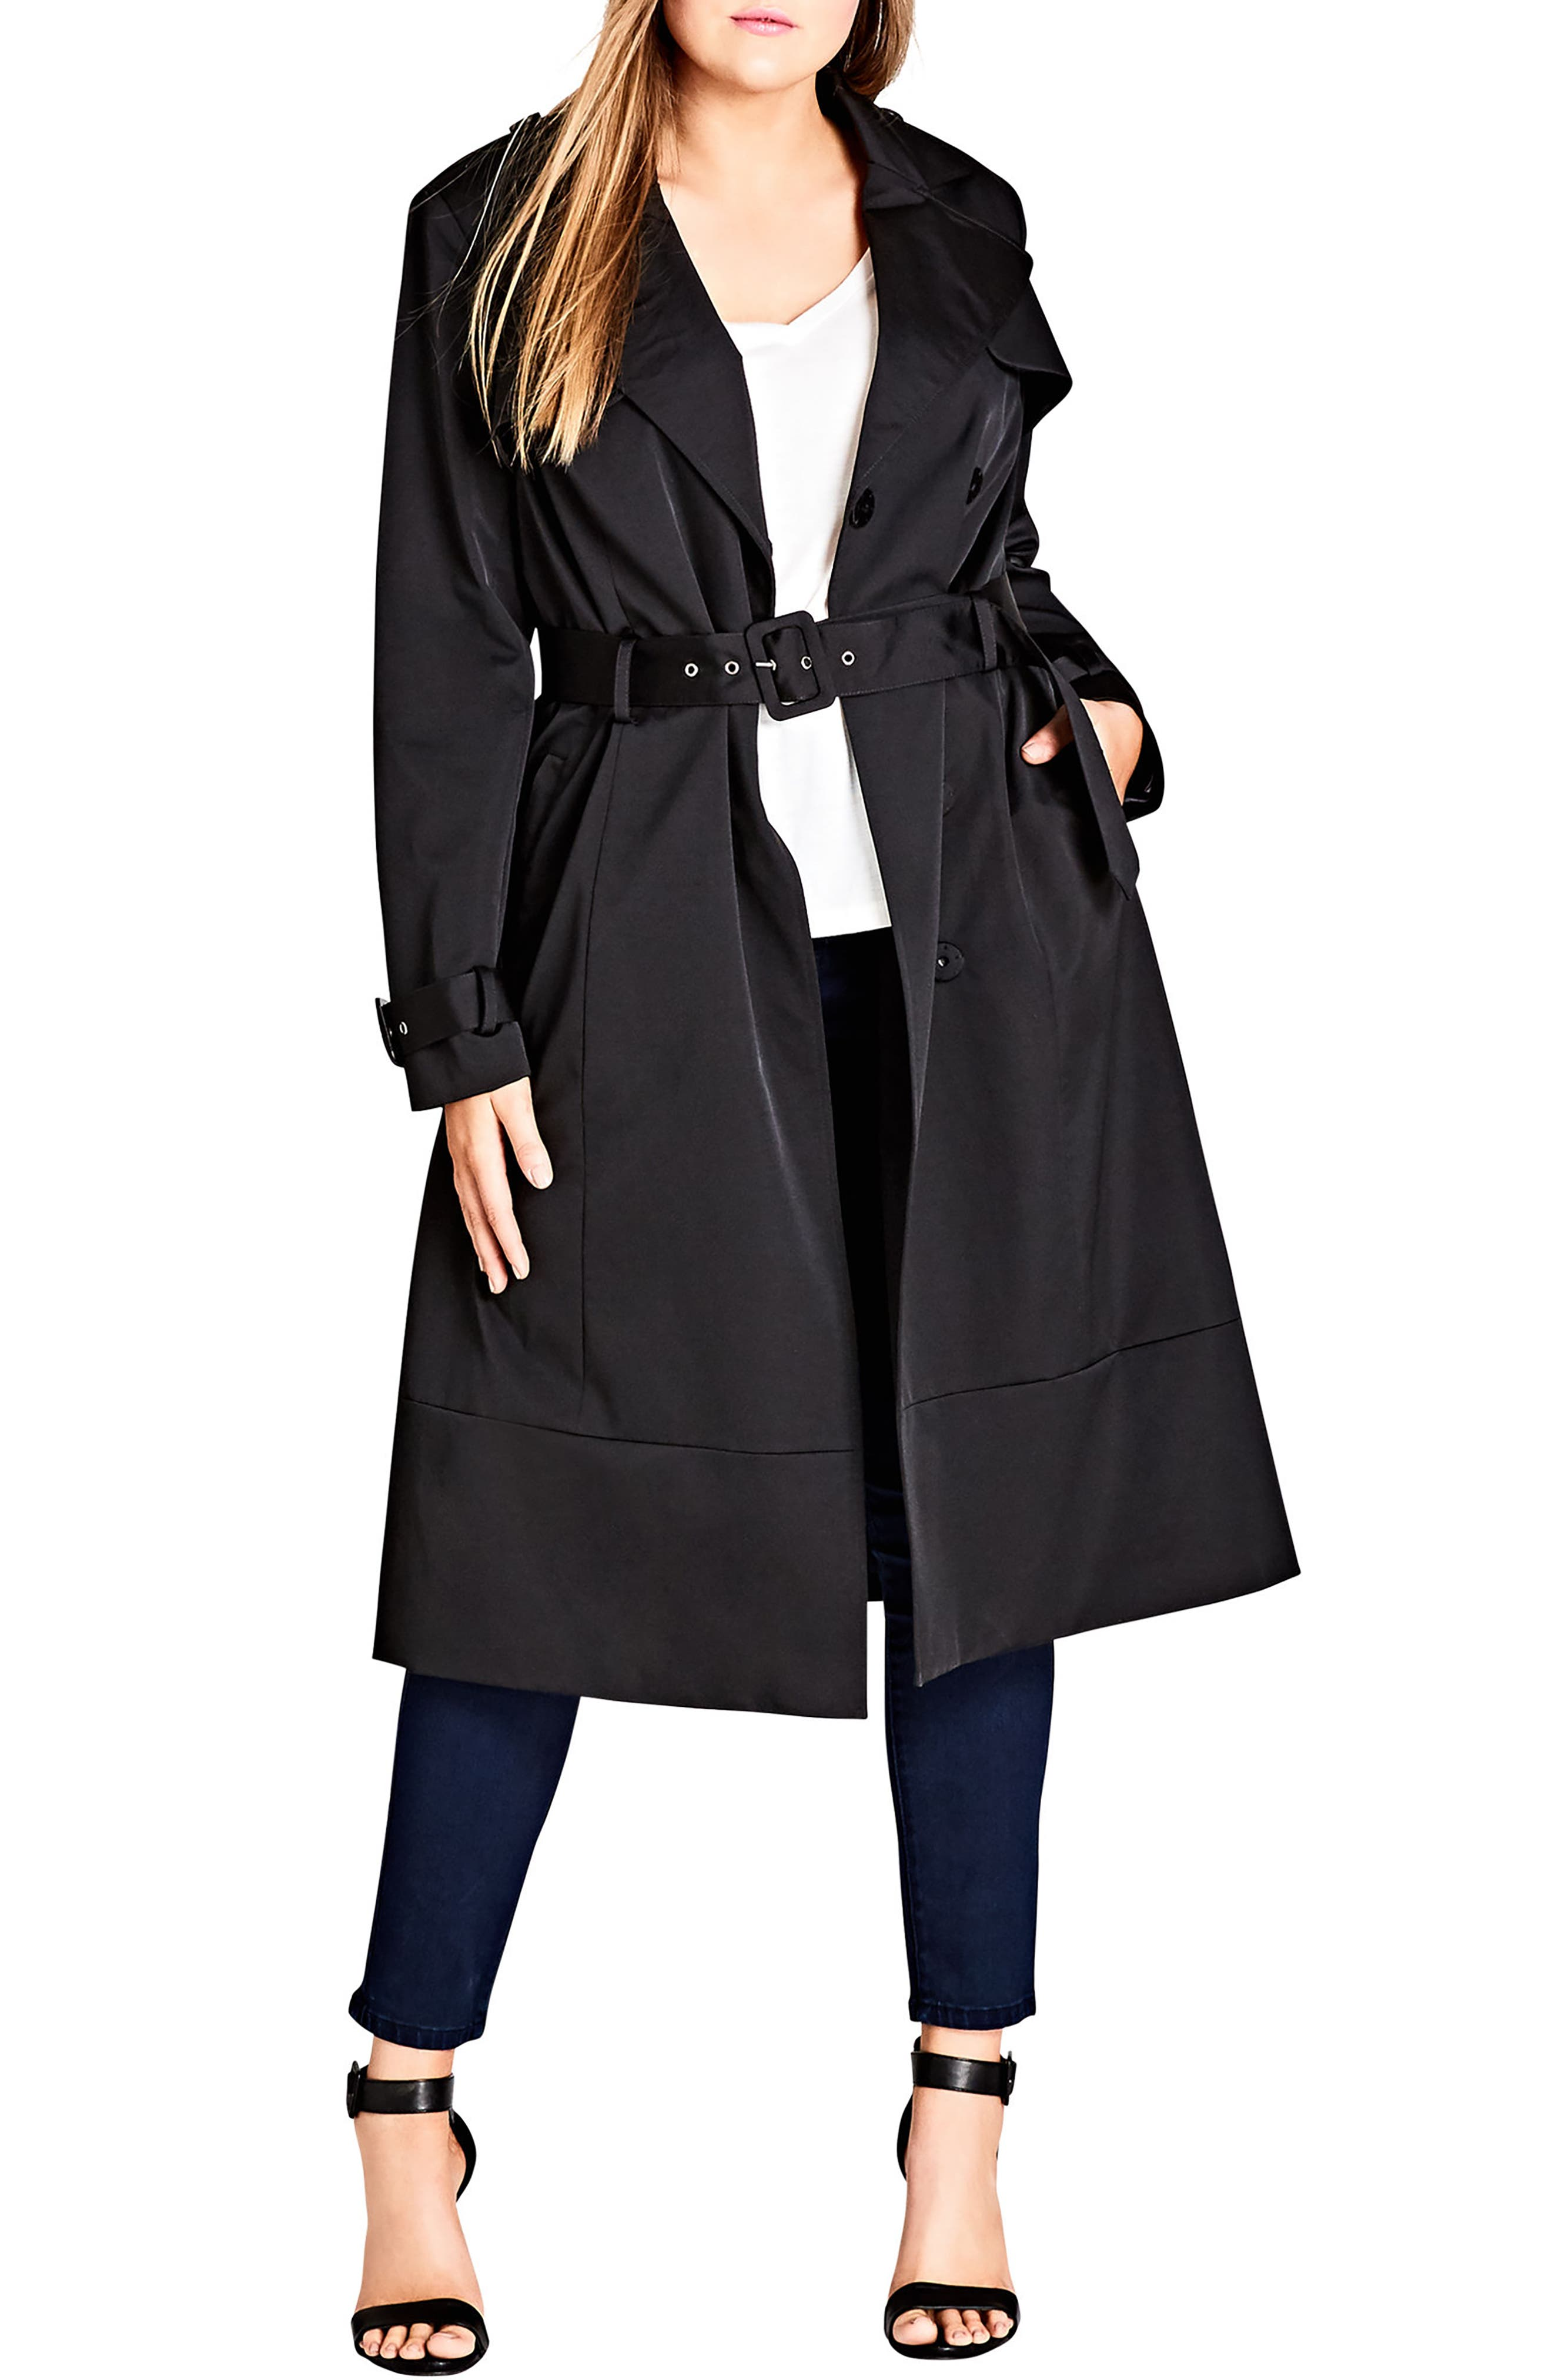 Alternate Image 1 Selected - City Chic Classic Trench Coat (Plus Size)